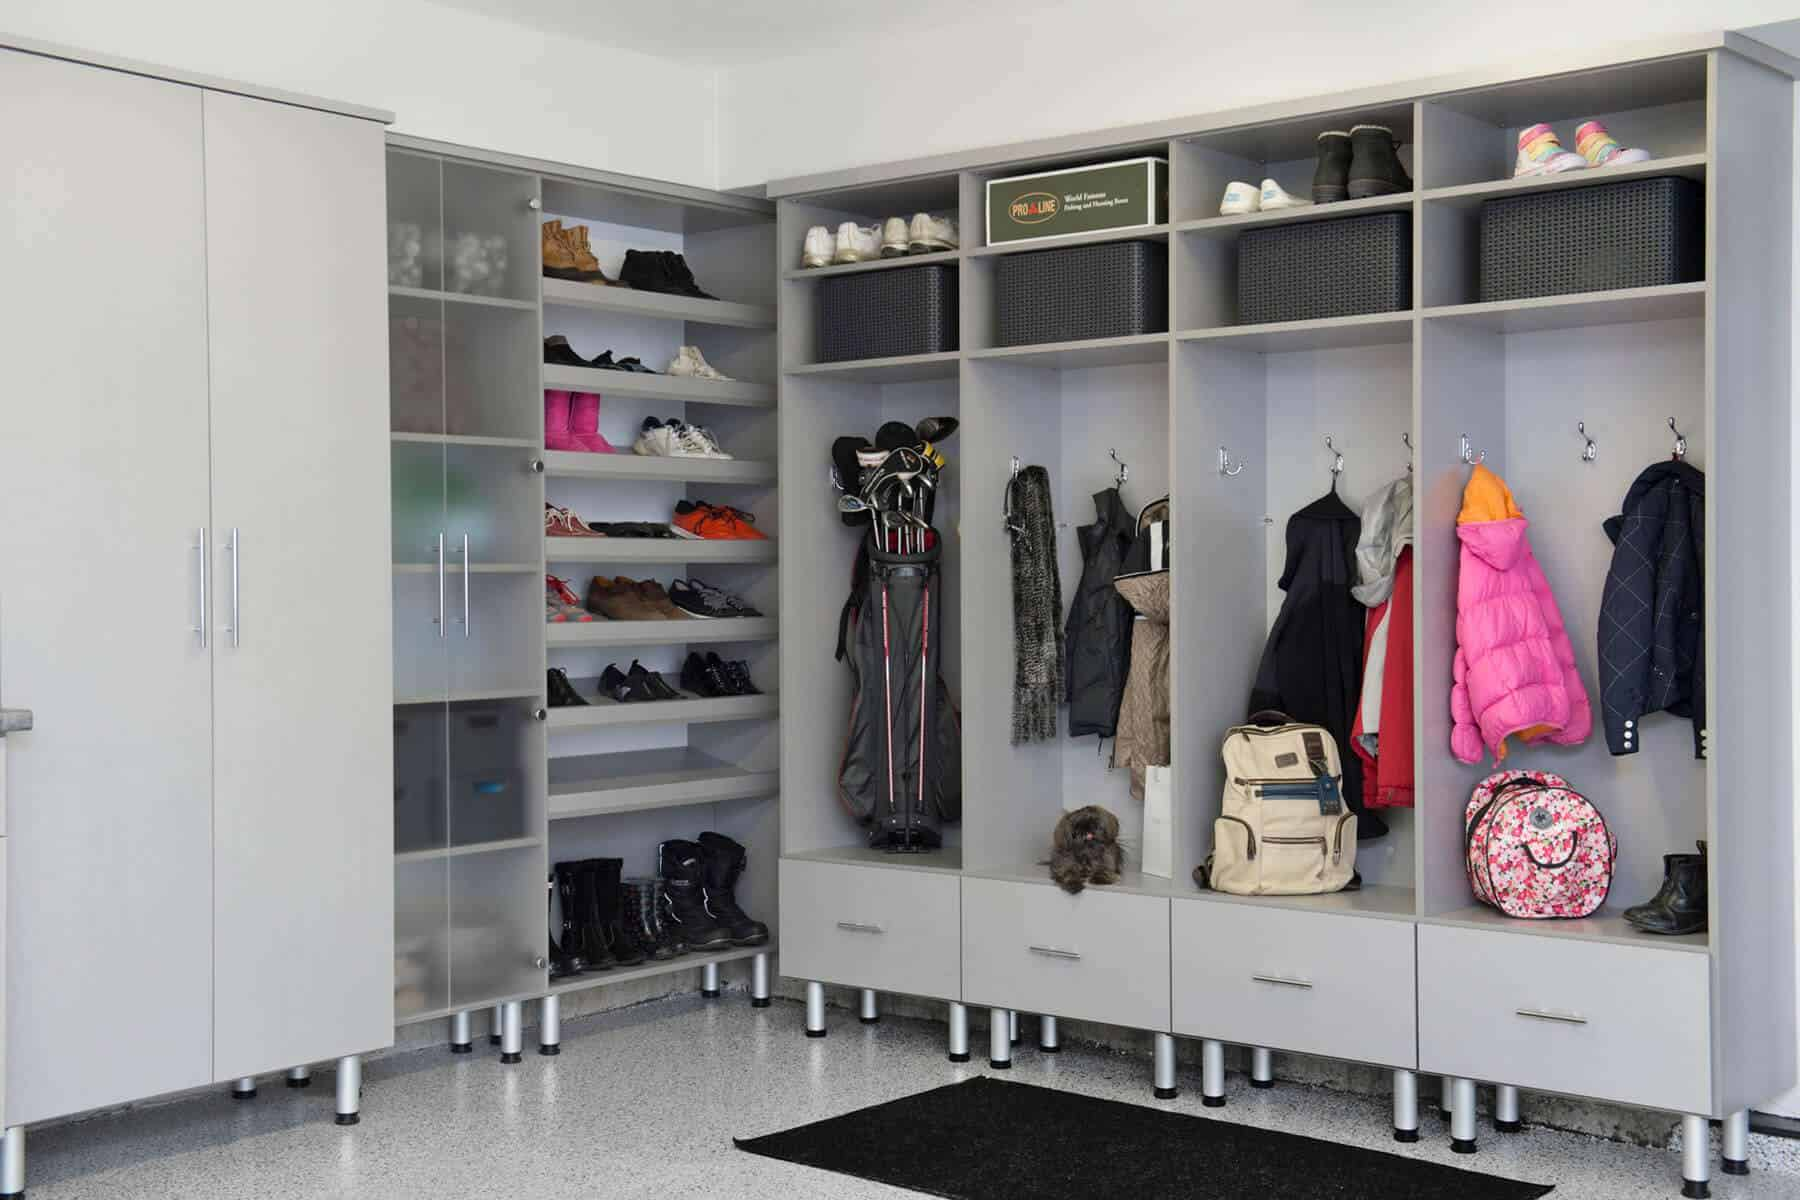 This has to be one of the most spacious and well-built mudrooms with separate compartments for almost everything including shoes, clothes, bags, etc. It also takes on a grey-theme, making it look more like a walk-in closet than a mudroom.